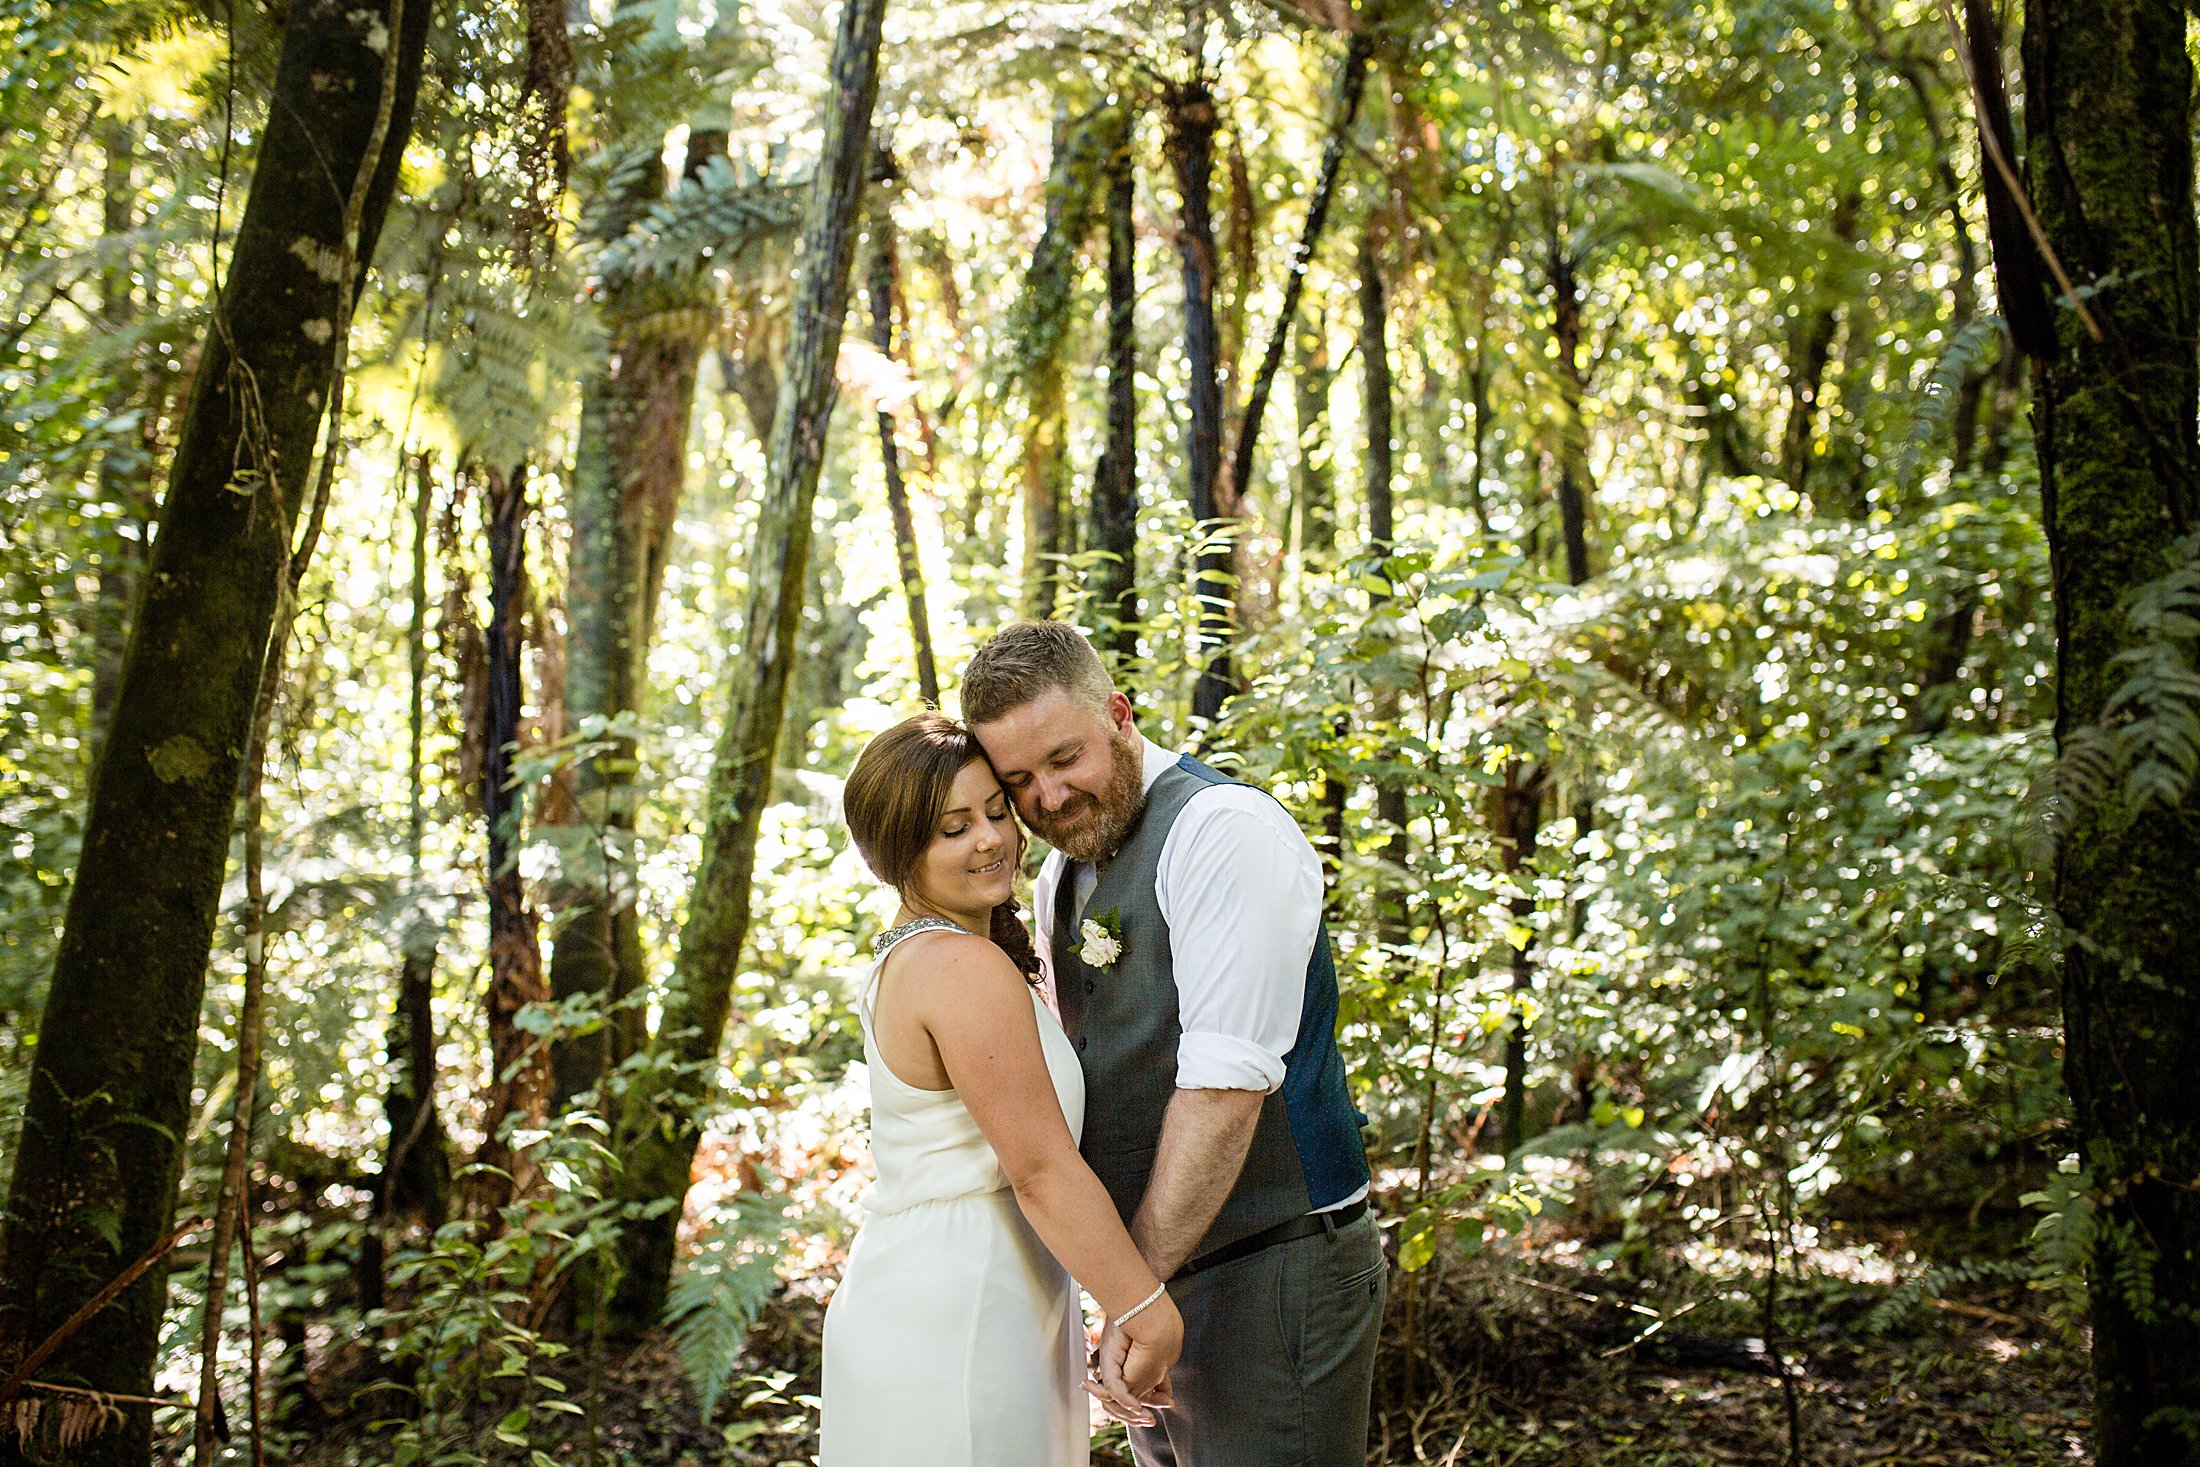 Lakes Lodge Lake Okataina Wedding Photographer